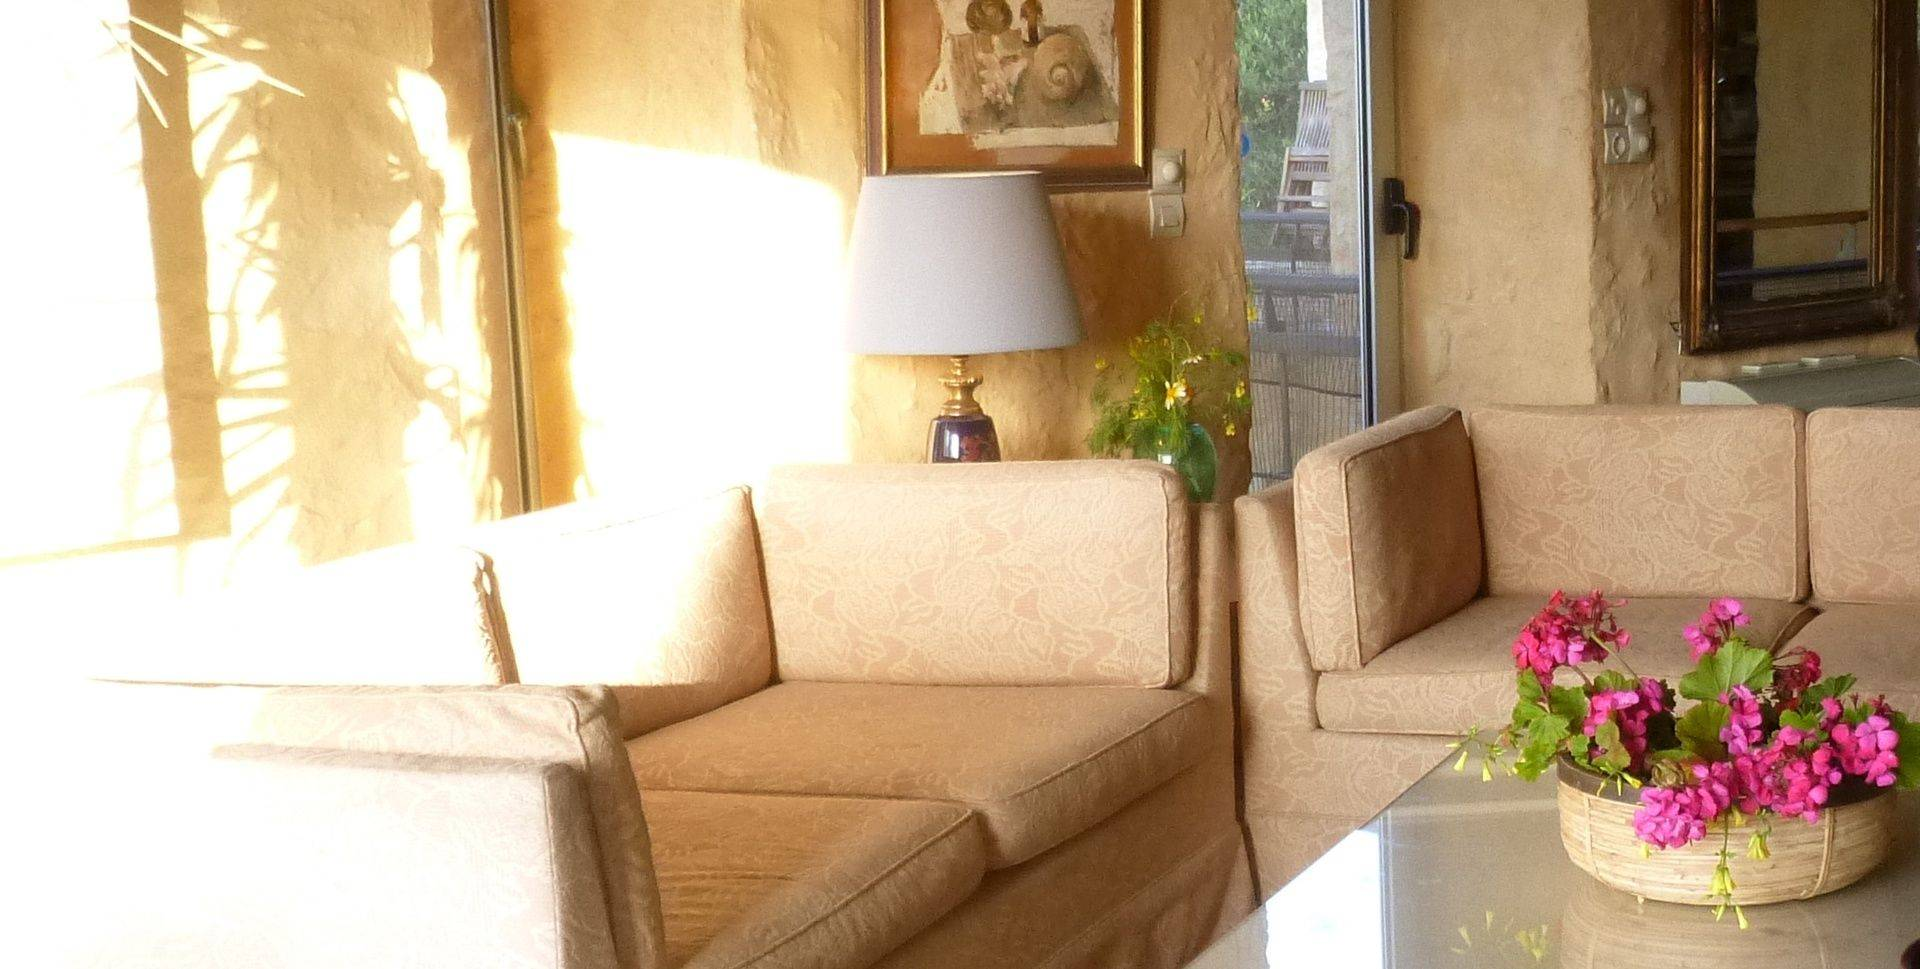 Sunshine washes the sitting room